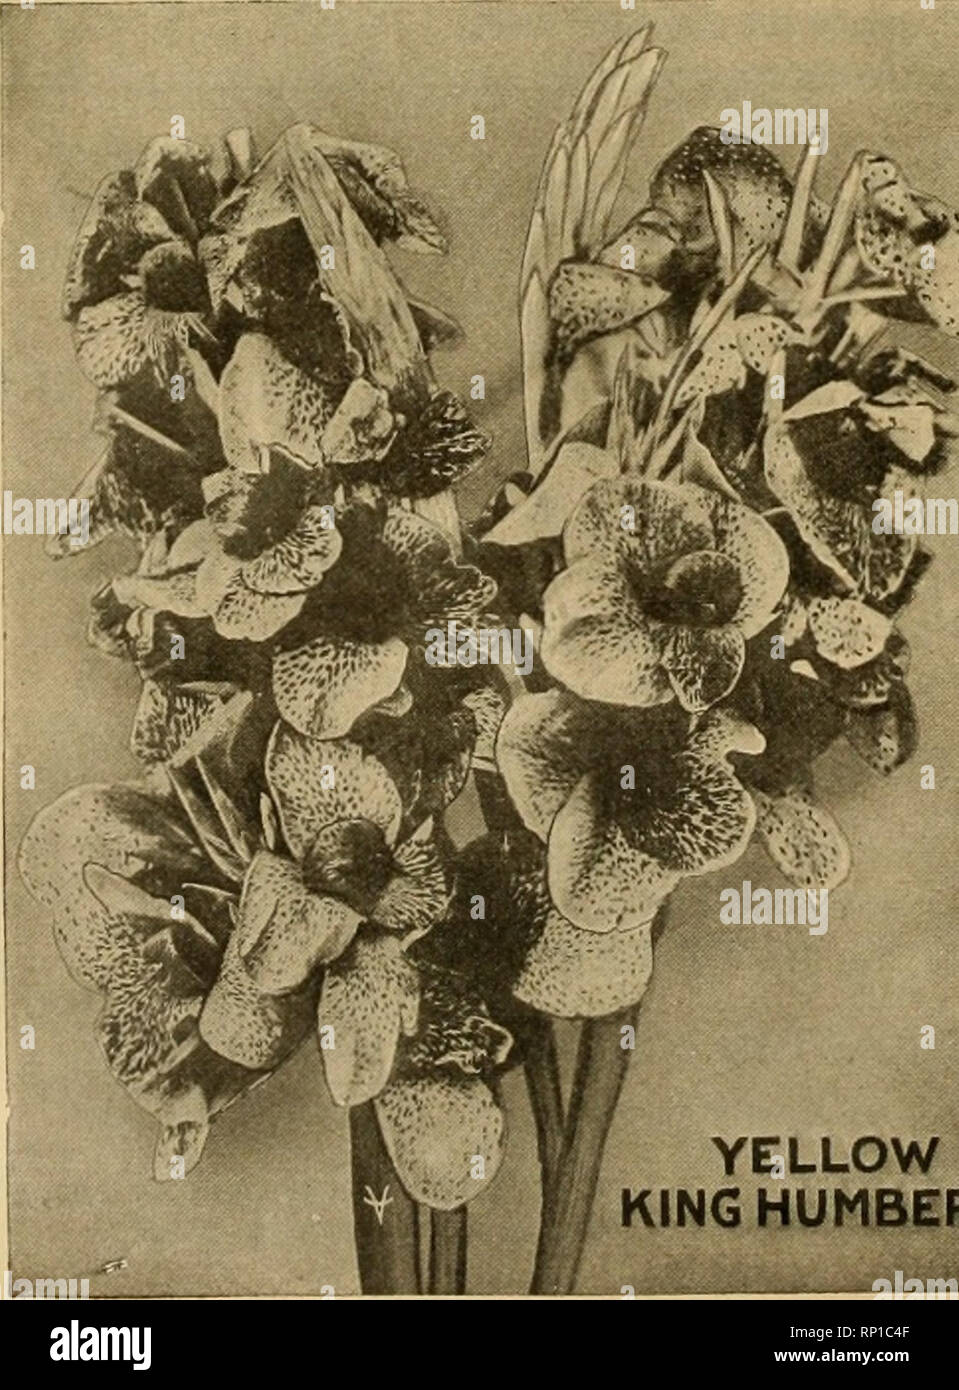 . The American florist : a weekly journal for the trade. Floriculture; Florists. 586 The American Florist. Mar. 31, m m New Chrysanthemums YELLOW TURNER. | NOVELTY SINGLES. This yellow sport from the famous Wm. Turner Mrs. Albert Phillips, Vivian Cook, Rose Walker, is identical with its parent in every I Carlotta and Veronica respect, except color. ] 40c per plant $4.00 per dozen 25c per plant $2.50 per dozen $30.00 per 100. i $16.00 per 100. JAPANESE ANEMONES Wee Wah Graf von Fleming Yellow Prince 50c per plant $5.00 per dozen LILIAN DOTY, $4.00 per 100; $30.00 per 1000. All the above ready f - Stock Image